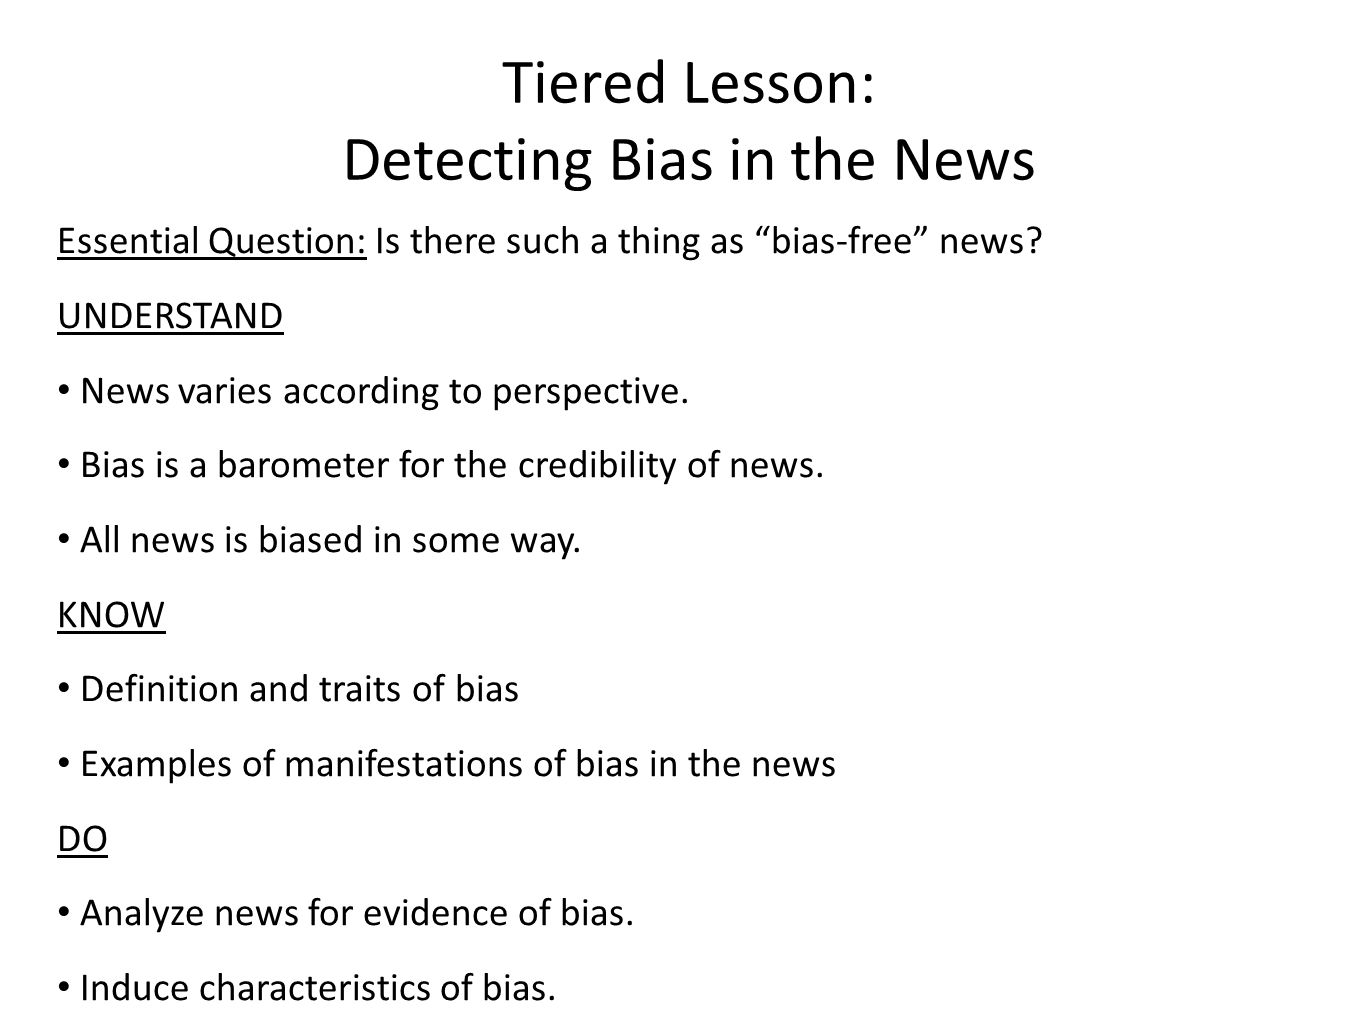 Tiered Lesson Detecting Bias In The News Ppt Video Online Download